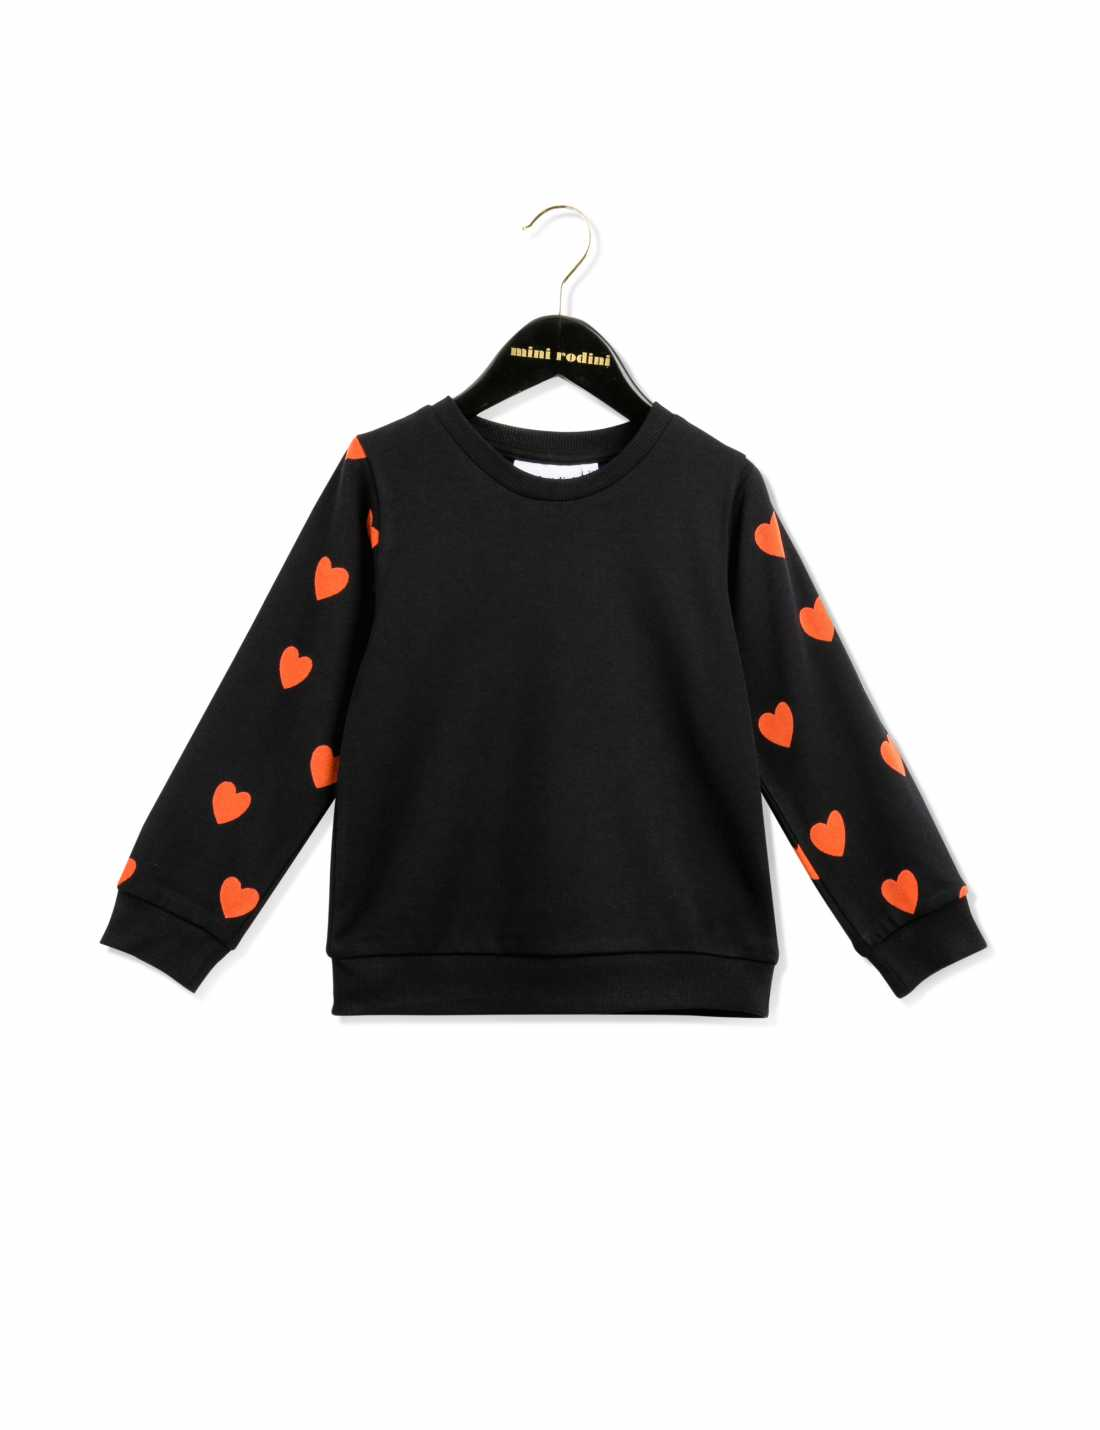 Black sweatshirt with red hearts printed all over the sleeves.